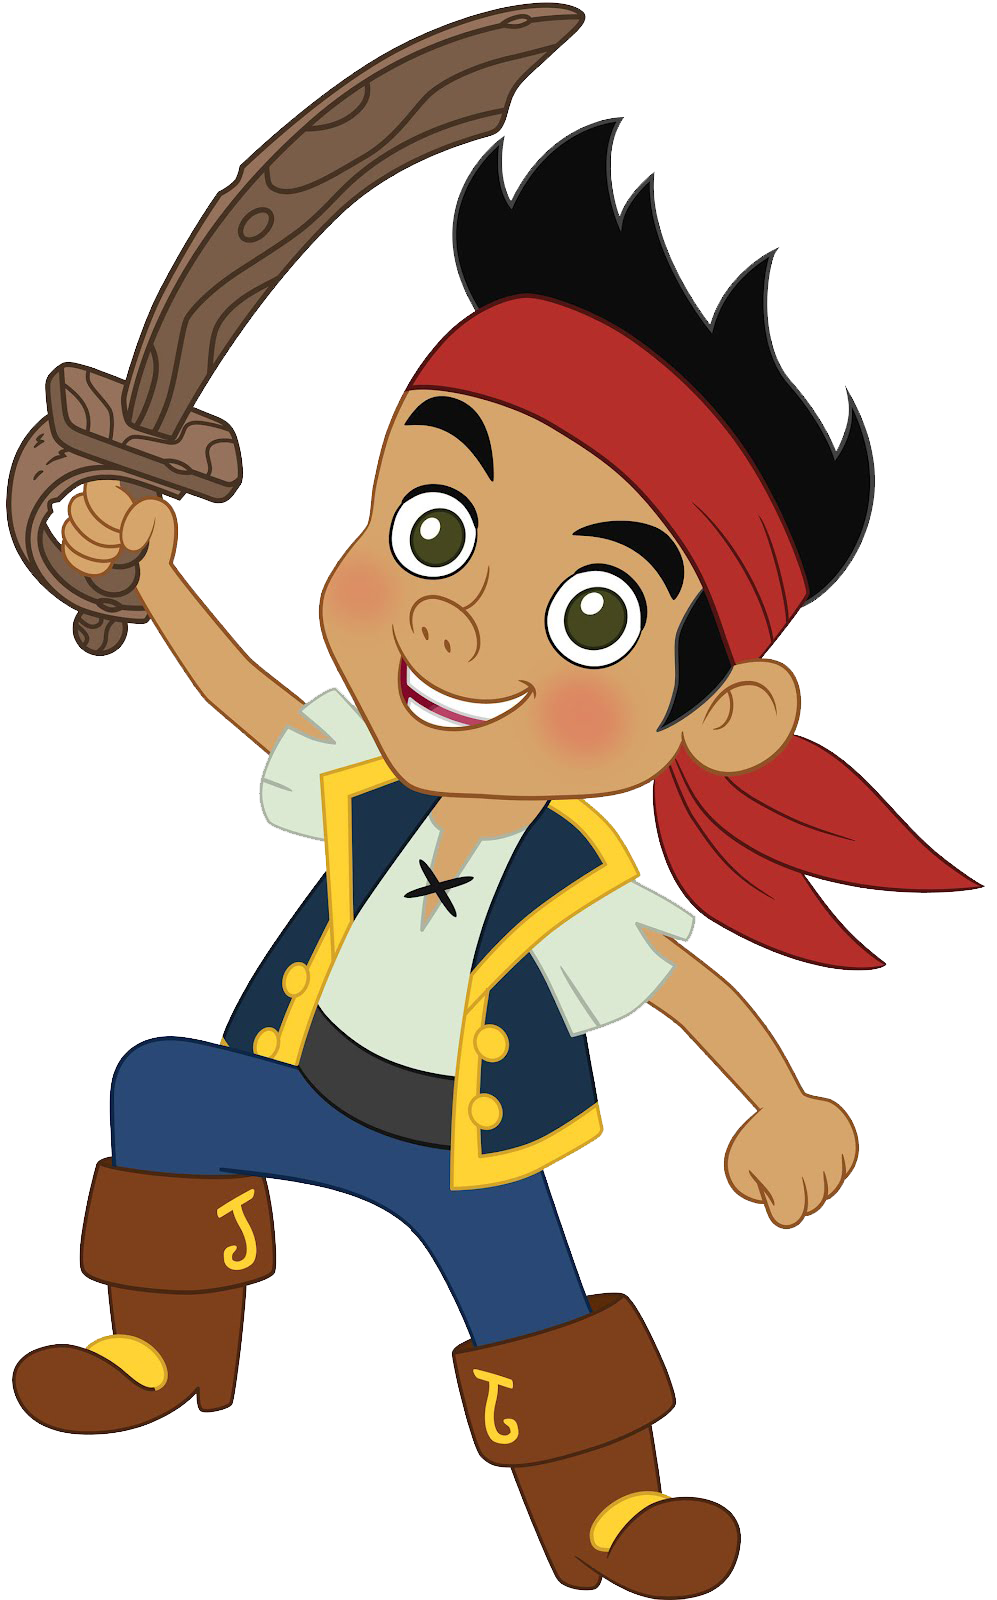 Halloween pirate clipart banner royalty free stock https://www.google.com.uy/search?q=centro de mesa jake el pirata ... banner royalty free stock